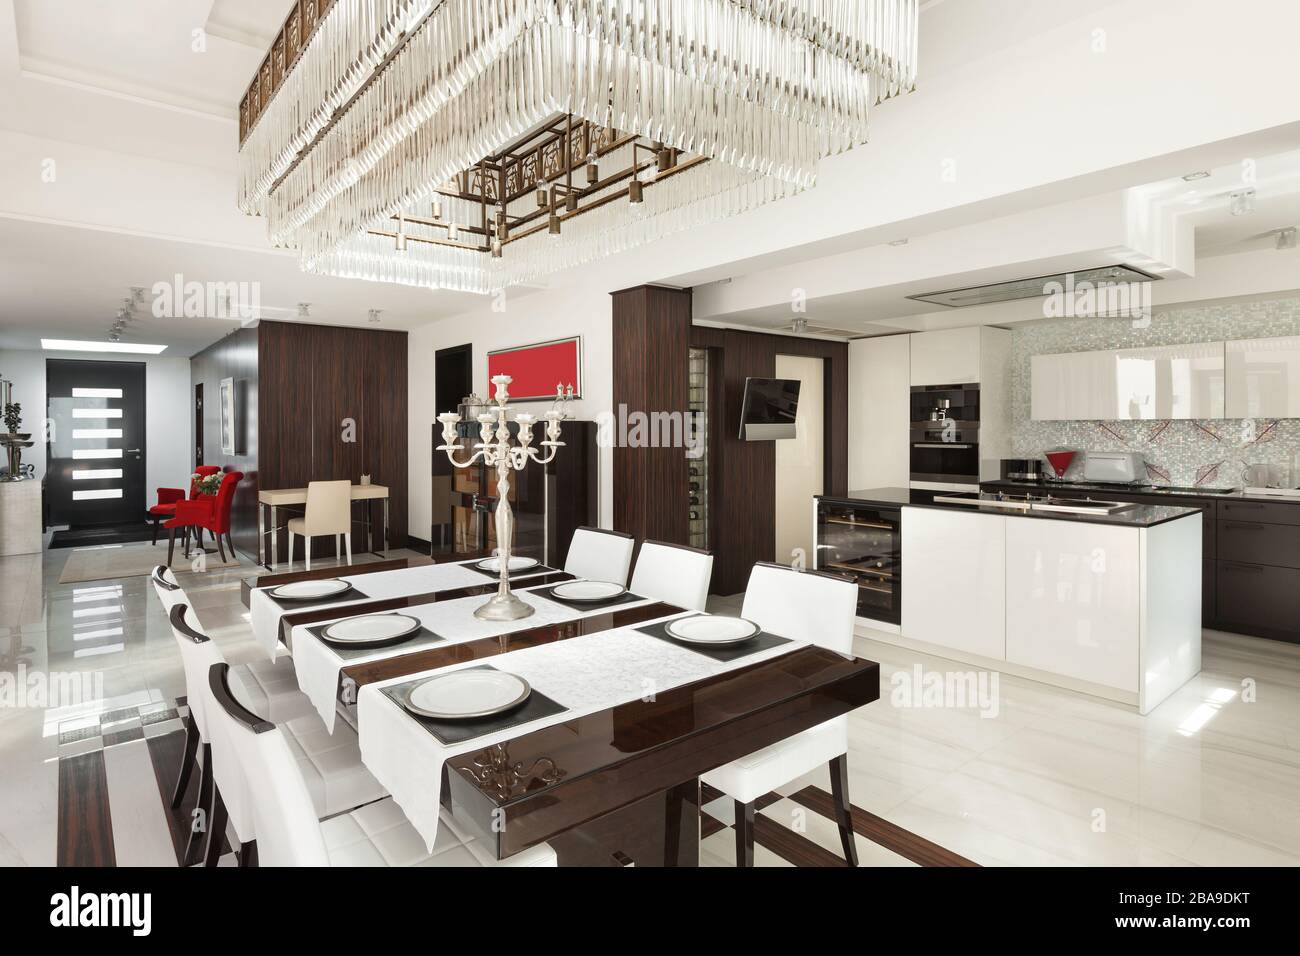 Architecture Modern House Beautiful Interiors Dining Room Stock Photo Alamy